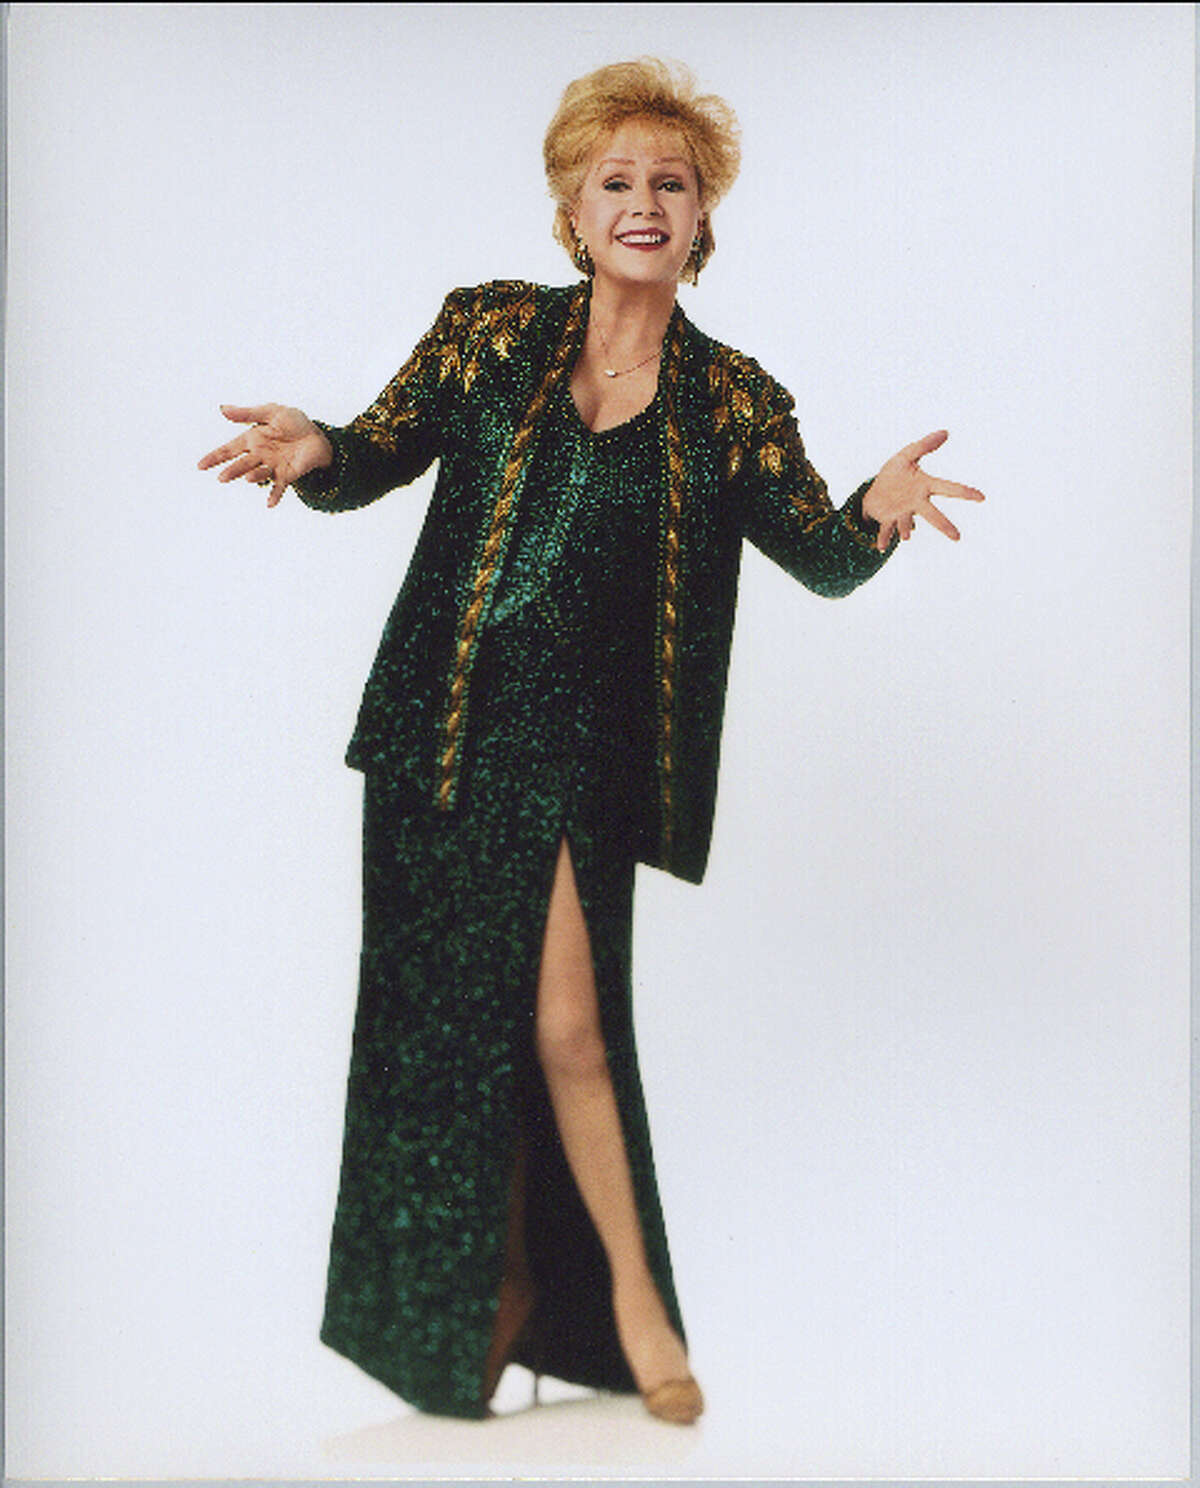 Debbie Reynolds will be fielding questions about her long career in Hollywood at the Edgerton Center on the campus of Sacred Heart University on Sunday, April 10.